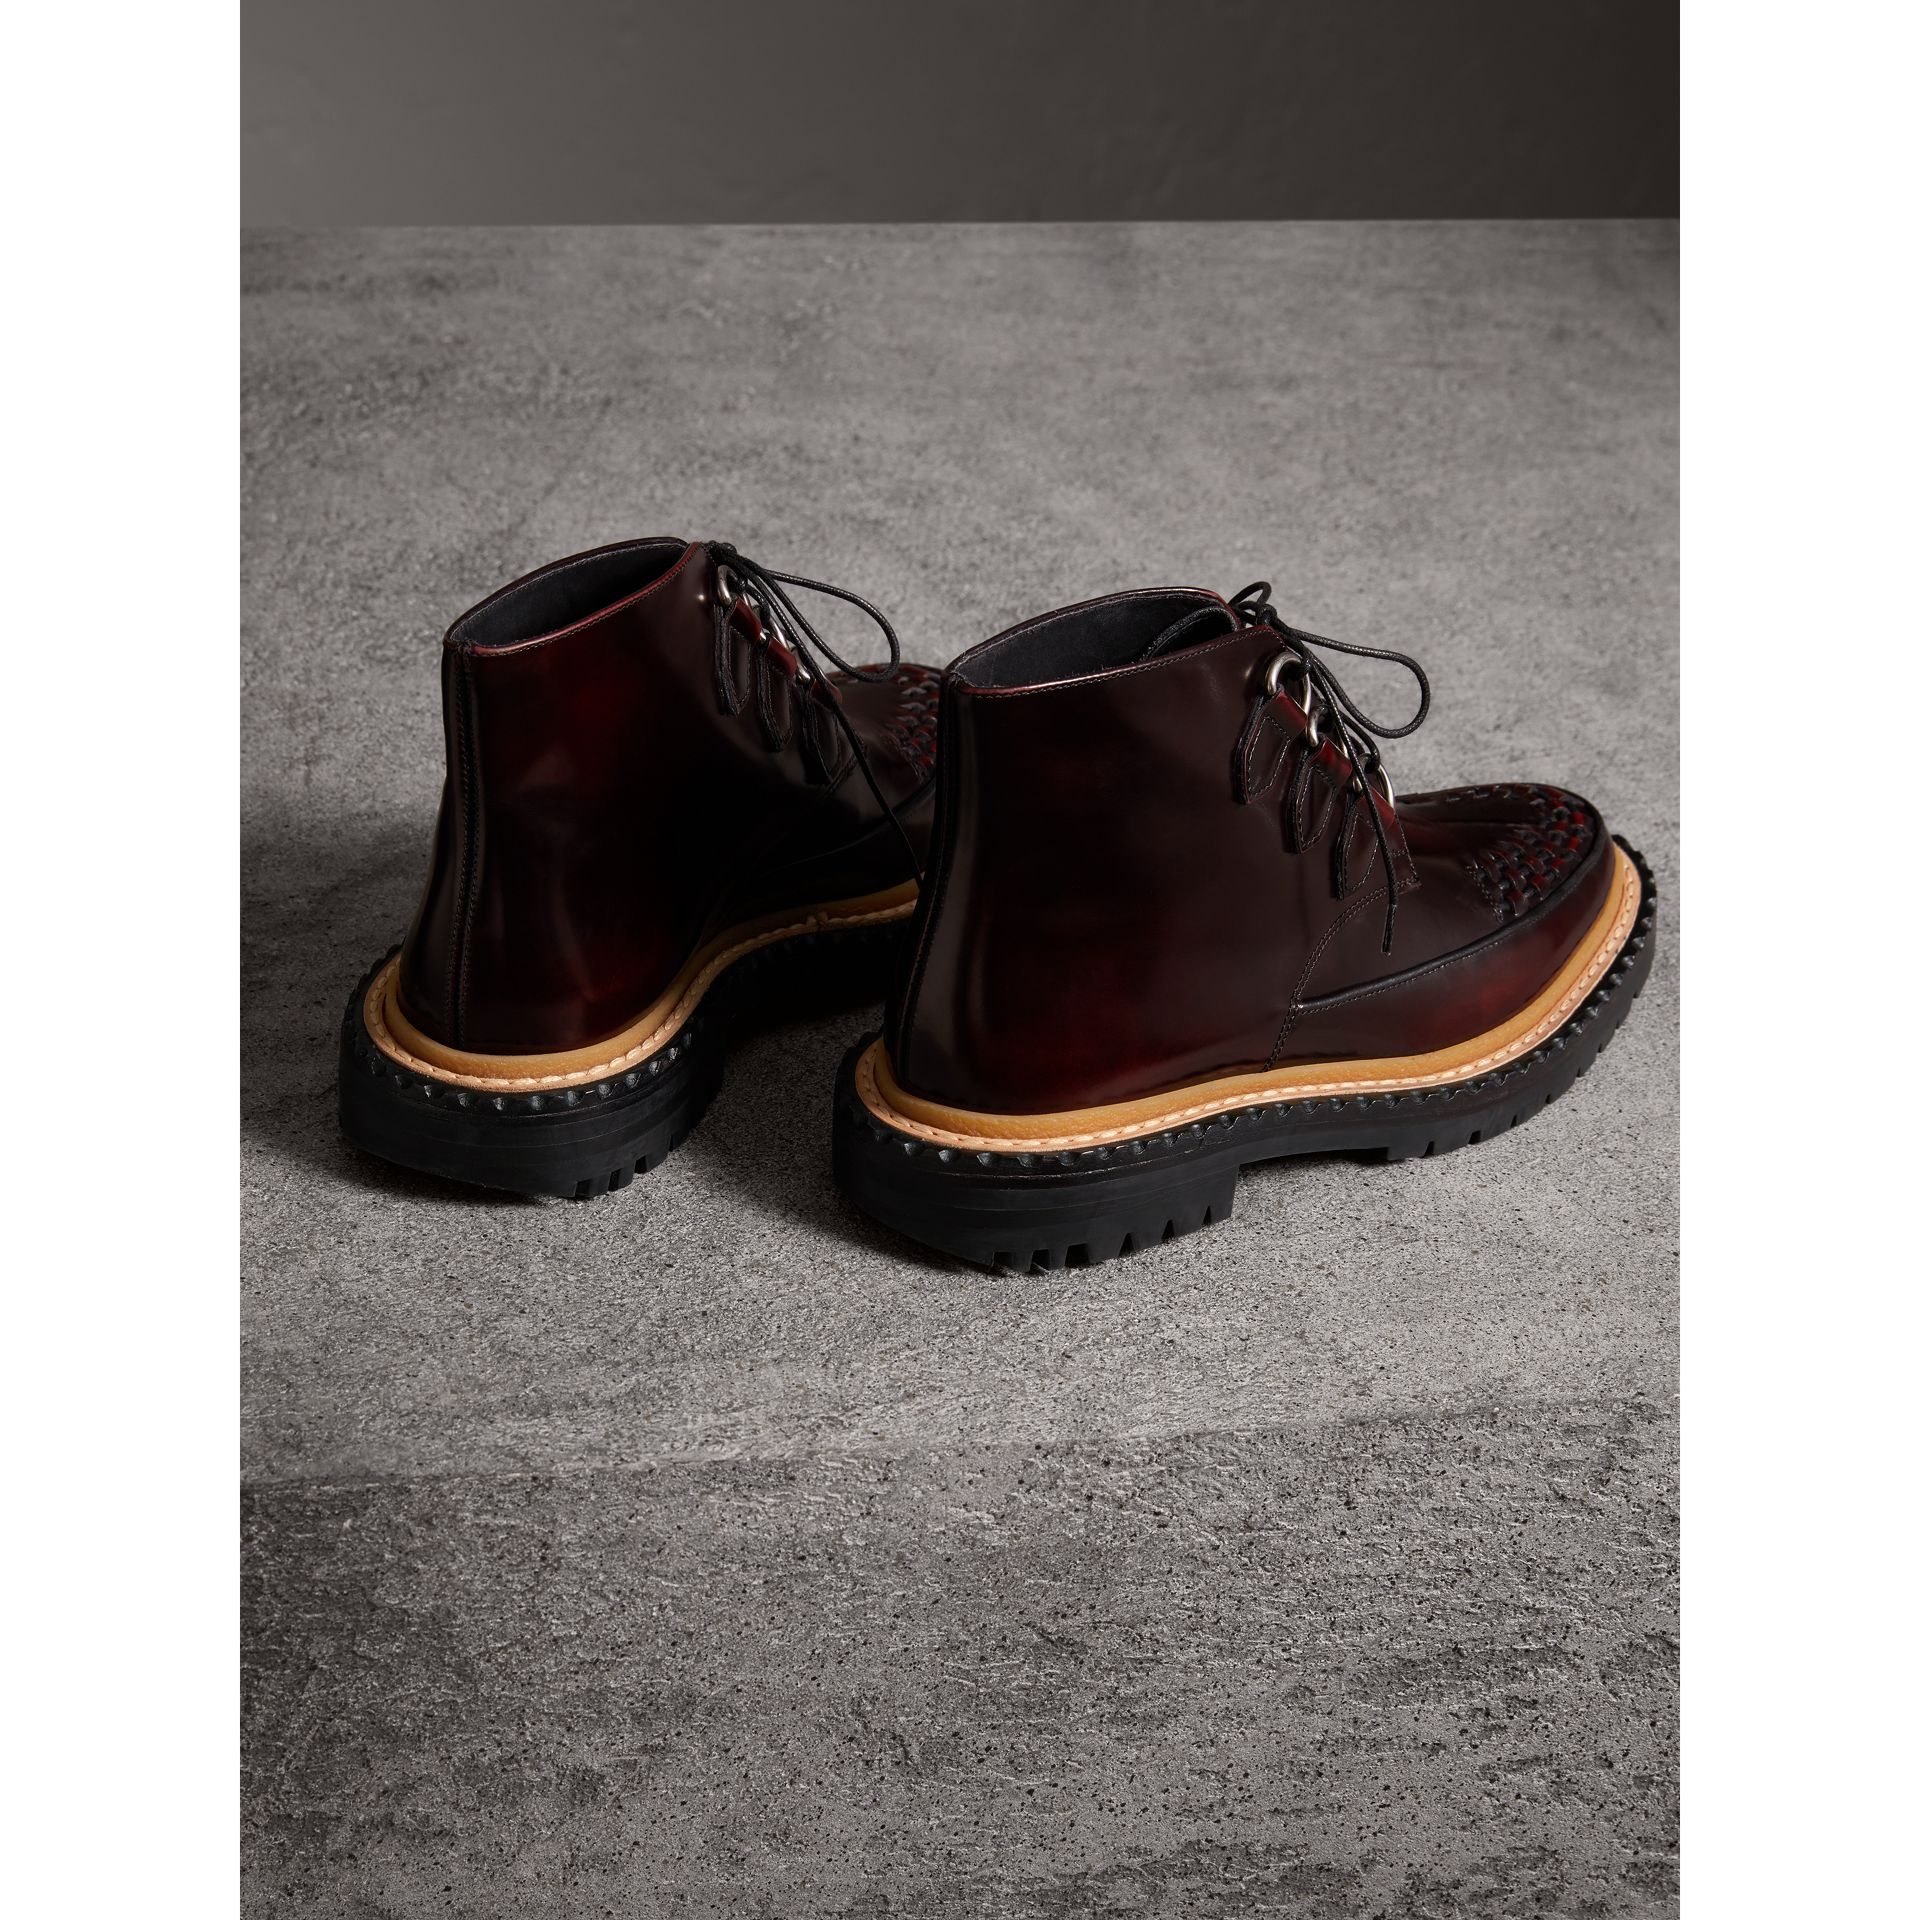 Woven-toe Polished Leather Ankle Boots in Bordeaux - Women | Burberry Hong Kong - gallery image 2